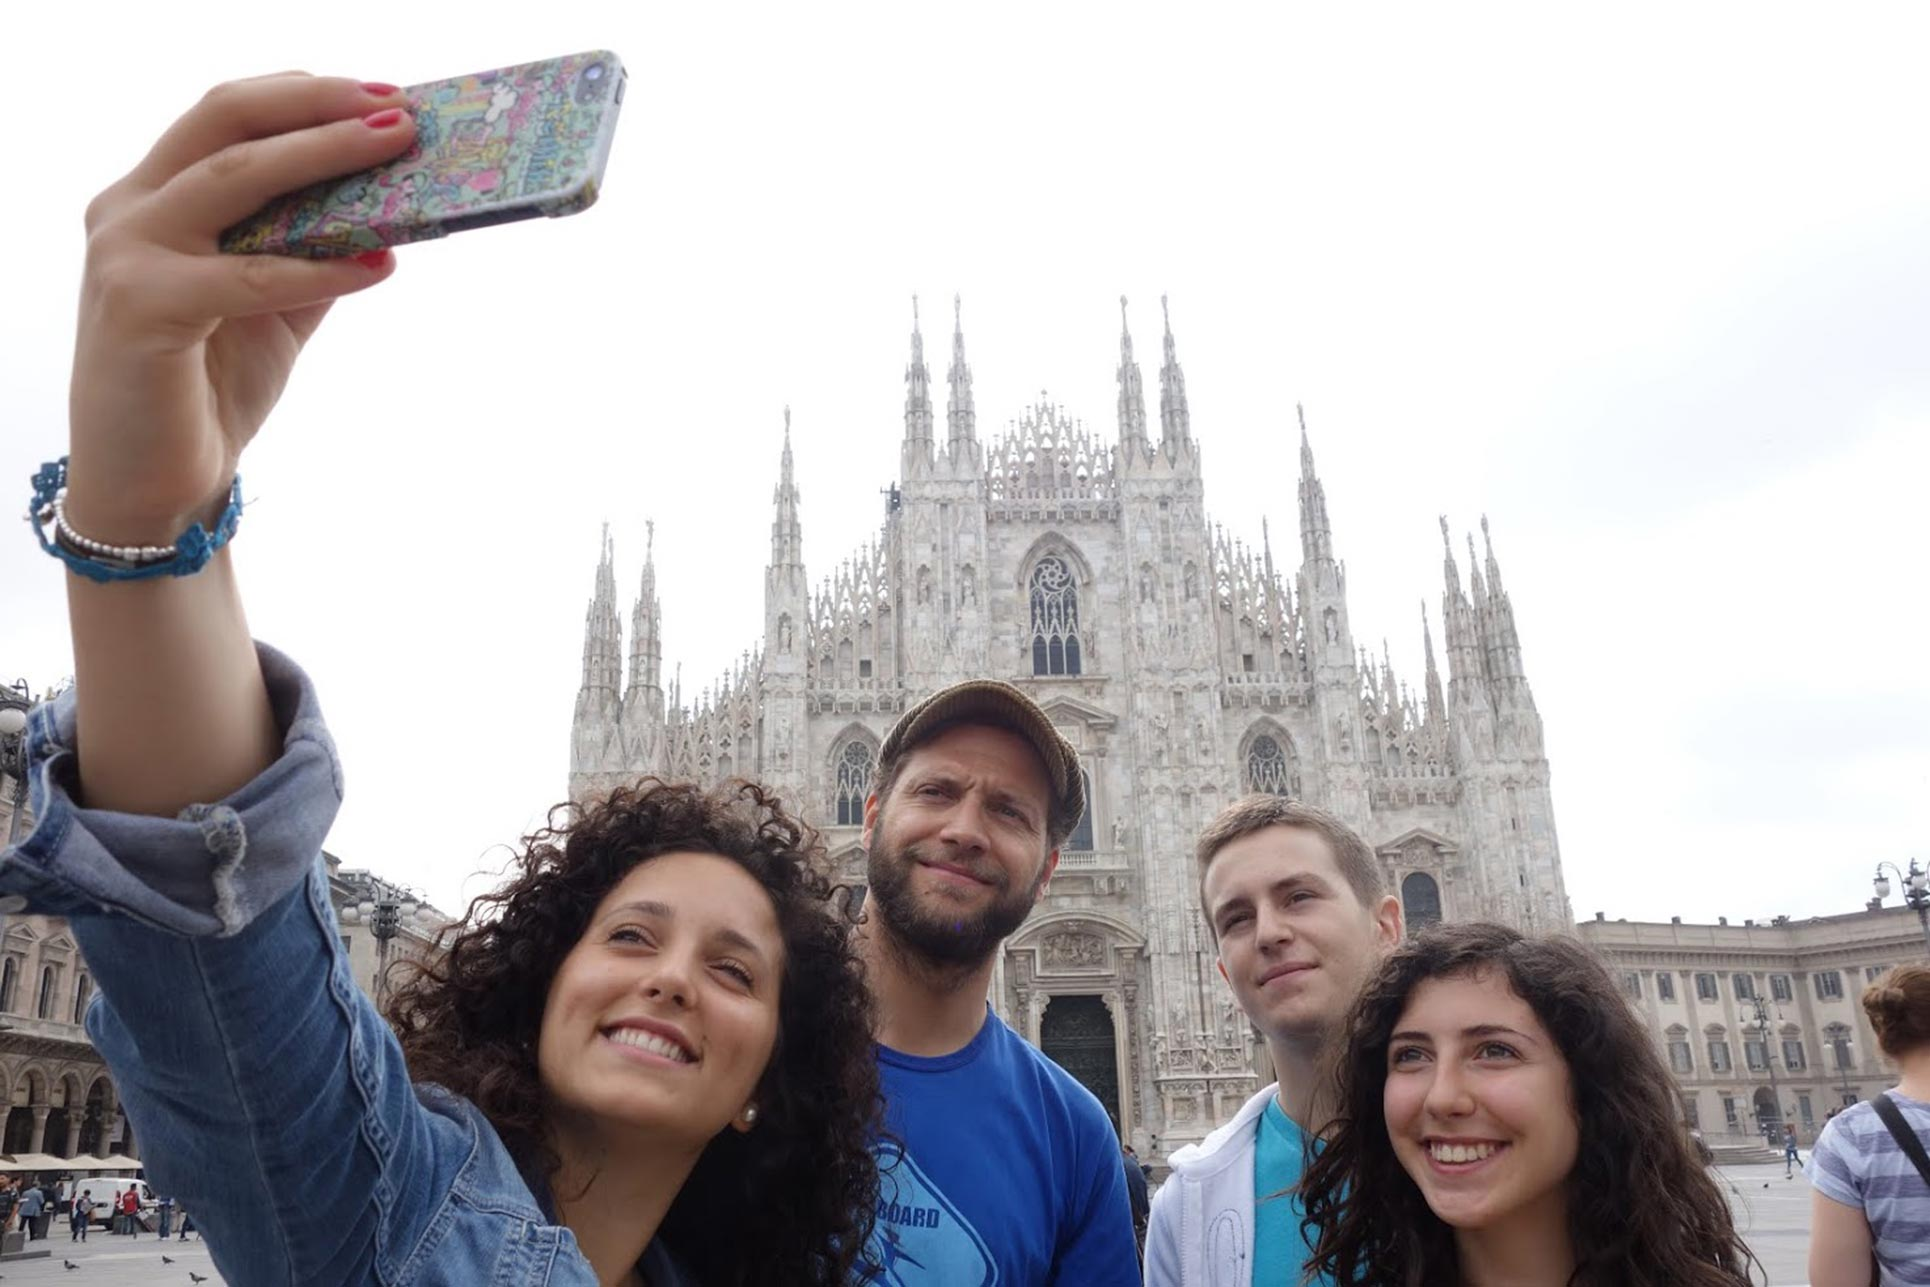 Selfie in front of the Milan Cathedral (Photo: Barbara Fässler)